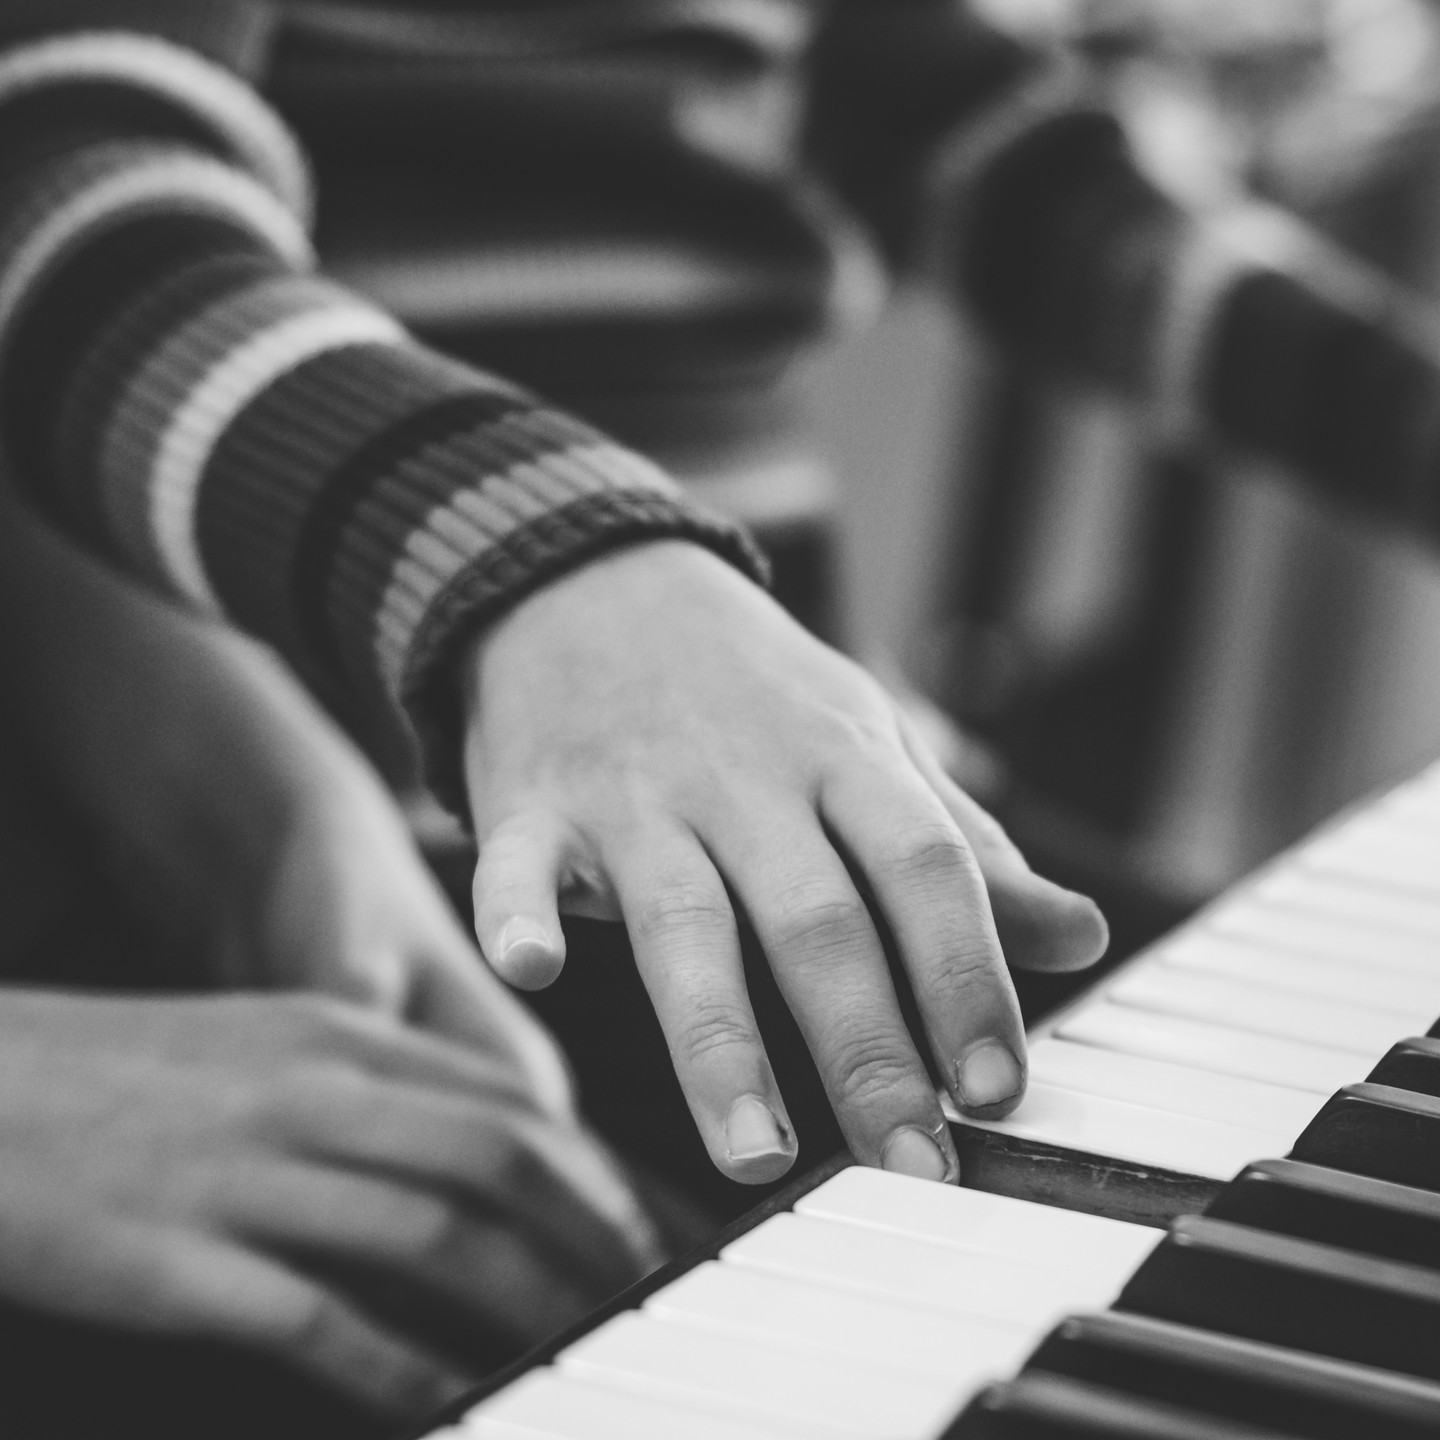 Family Photographer Birmingham, close up image of girls hands on the piano, black & white photo